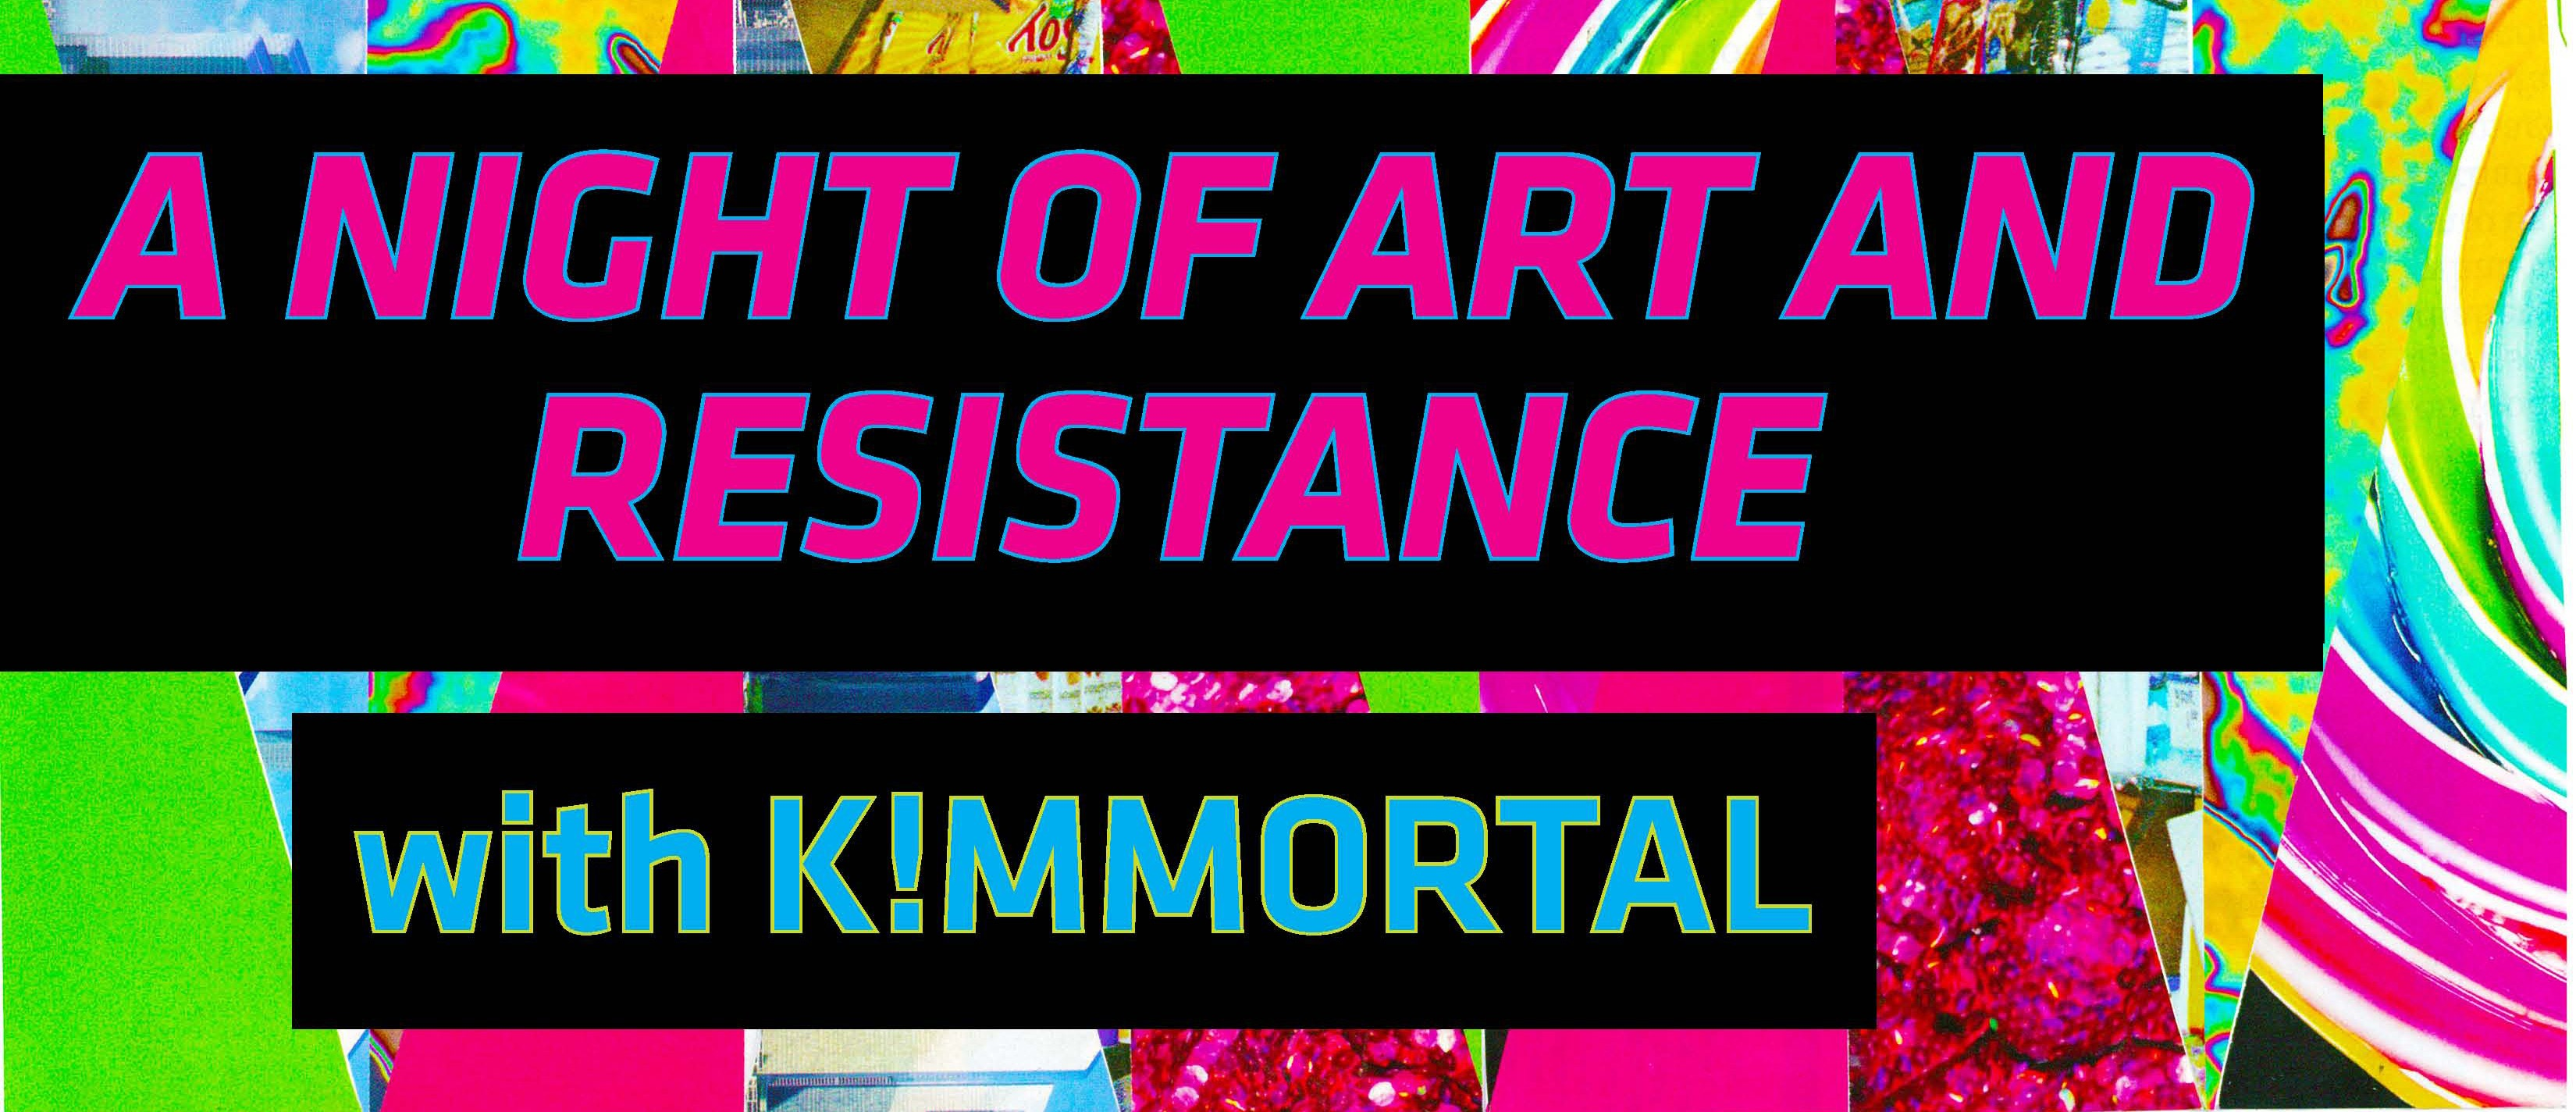 A Night of Art and Resistance with K!mmortal